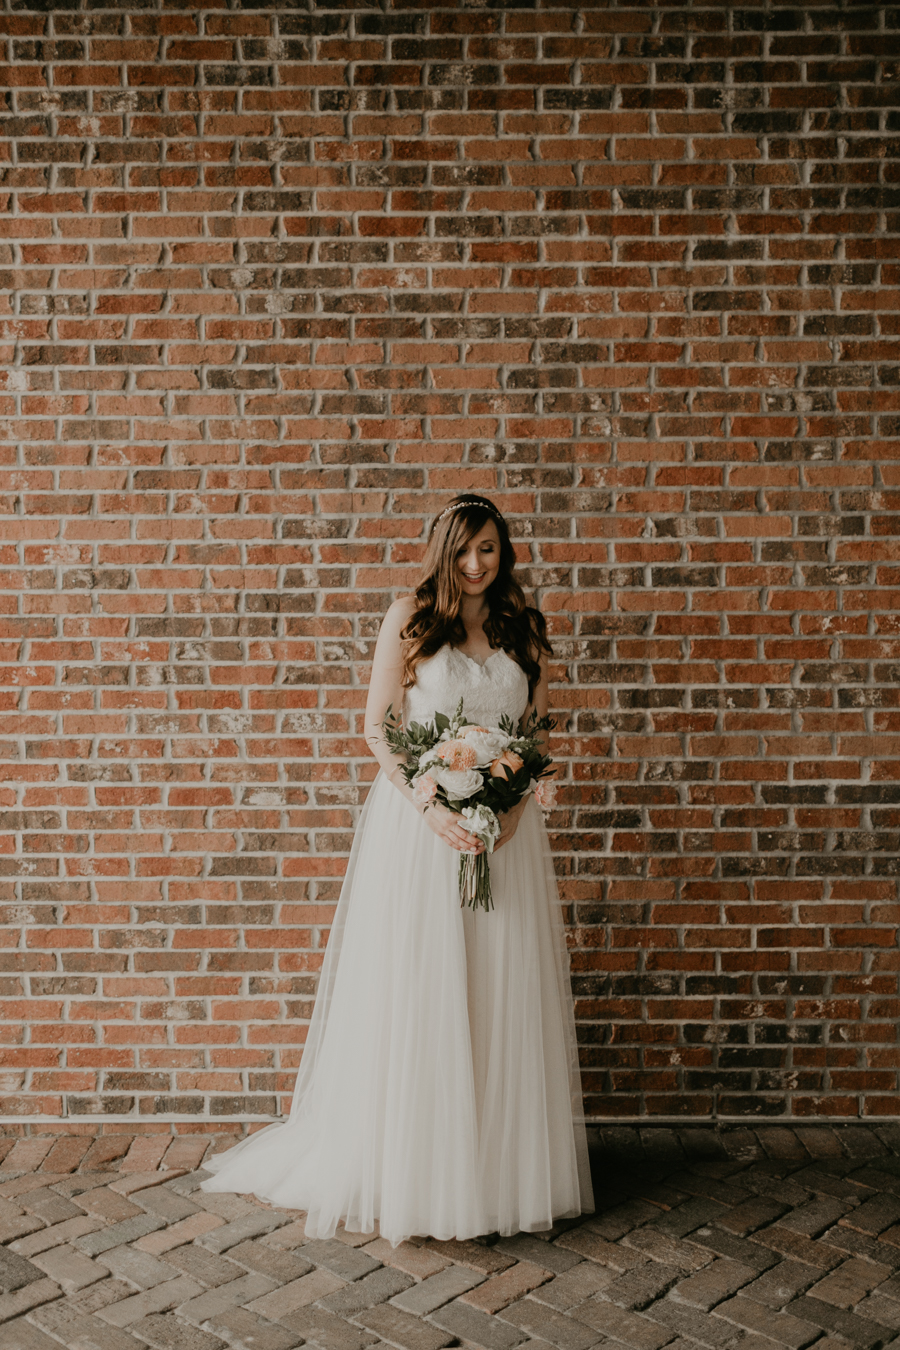 Stephanie And Kent Bailey Tampa Florida Romantic Wedding At Coppertail Brewery in Ybor Florist Fire BHLDN Mis En Place Ibex String Quartet Let Them Eat Cake -74.jpg